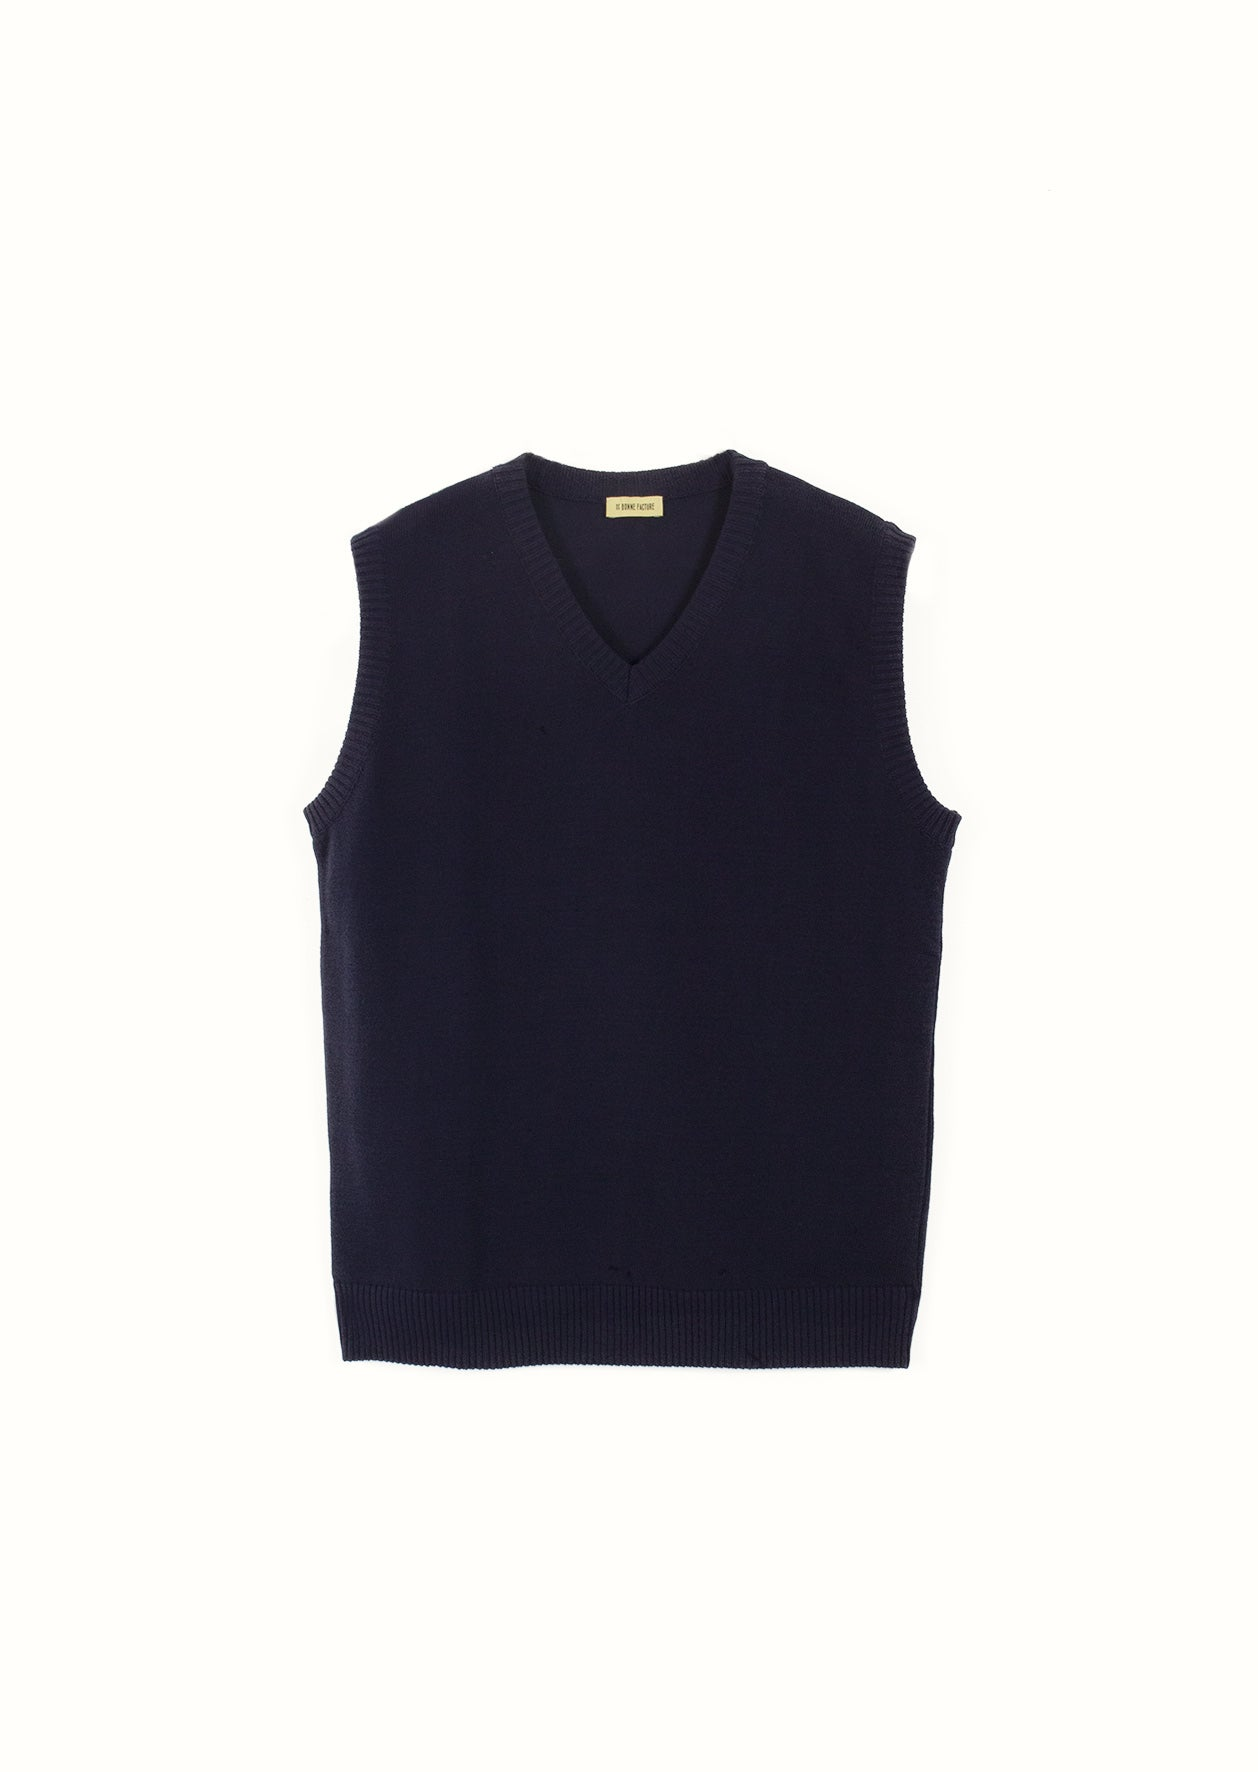 De Bonne Facture - Knitted vest - Organic cotton - Navy